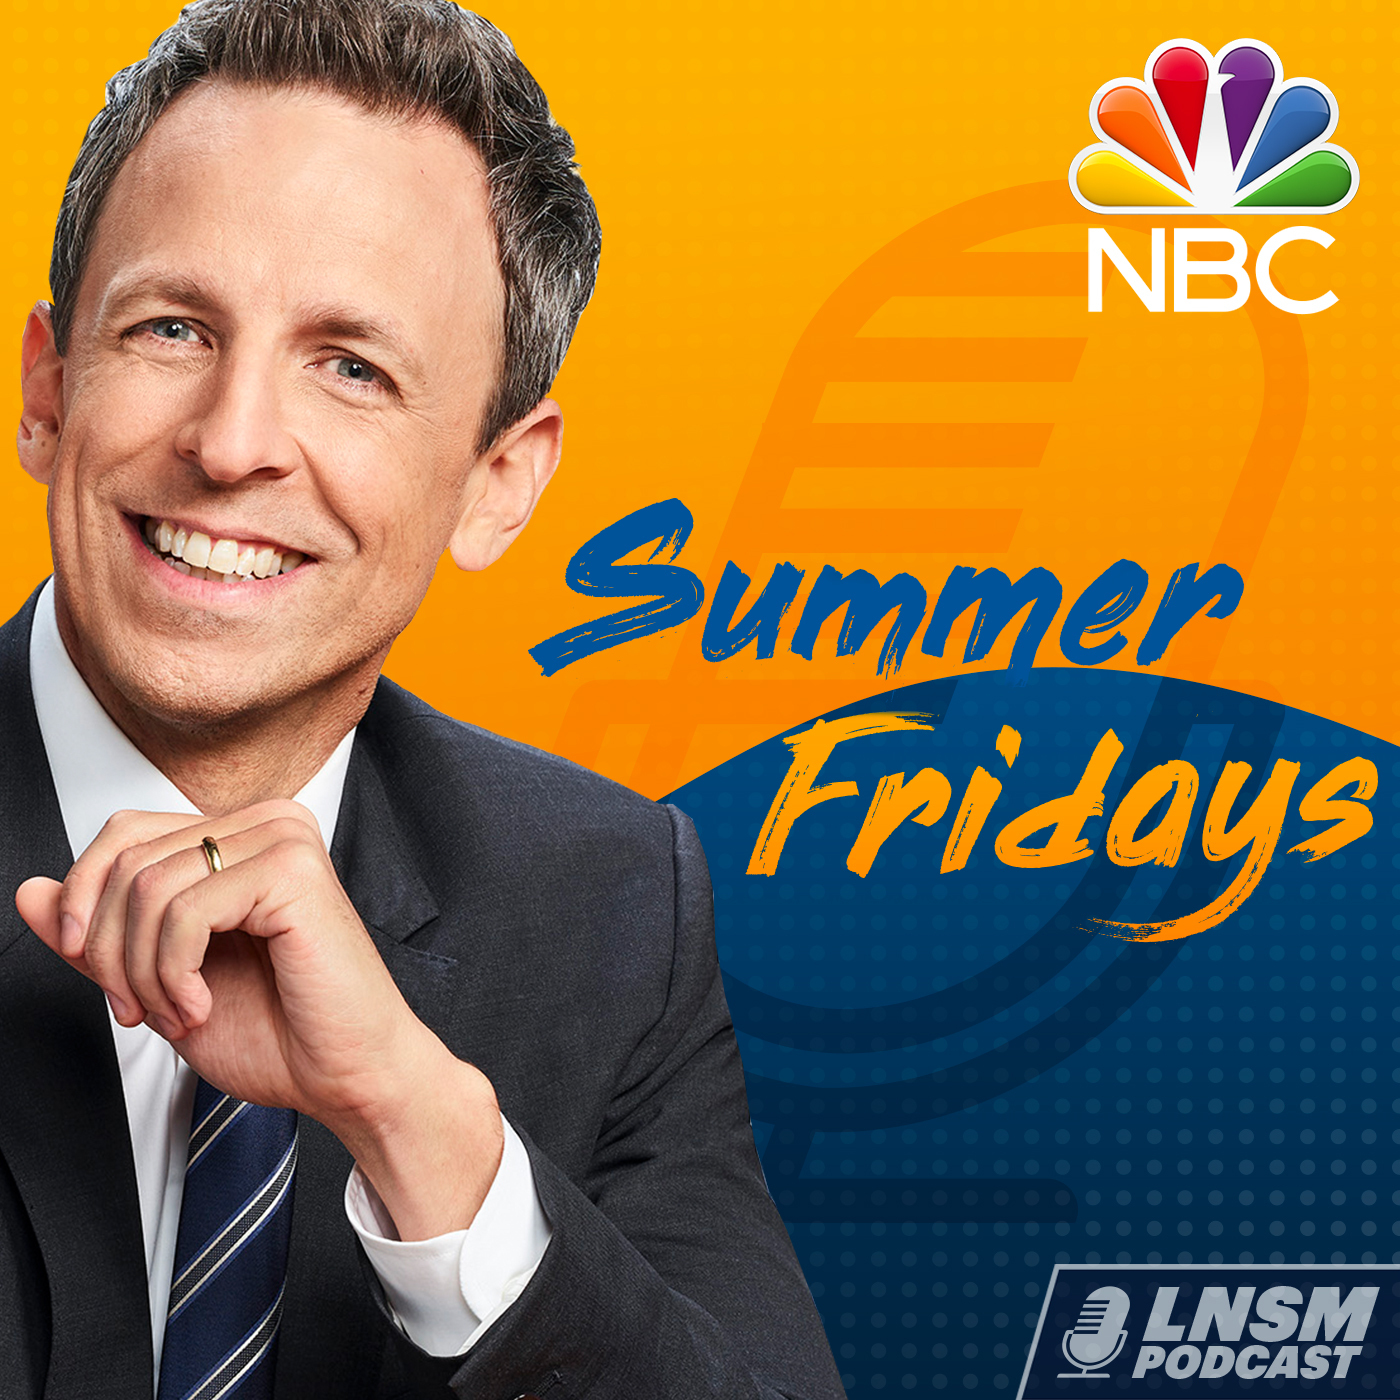 Summer Friday '19: Episode 5